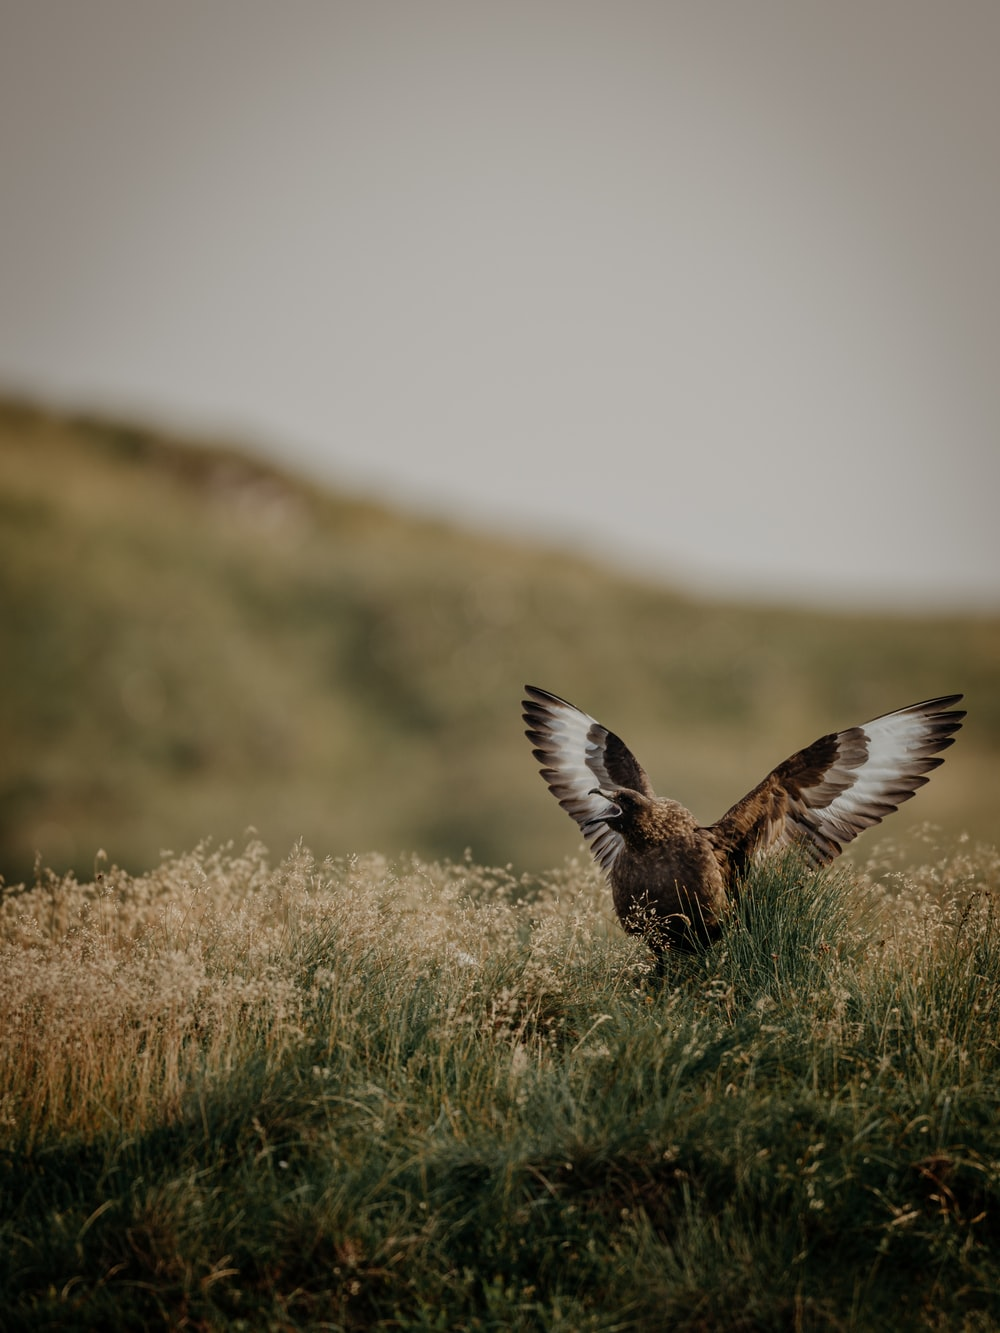 brown and white bird flying over brown grass during daytime